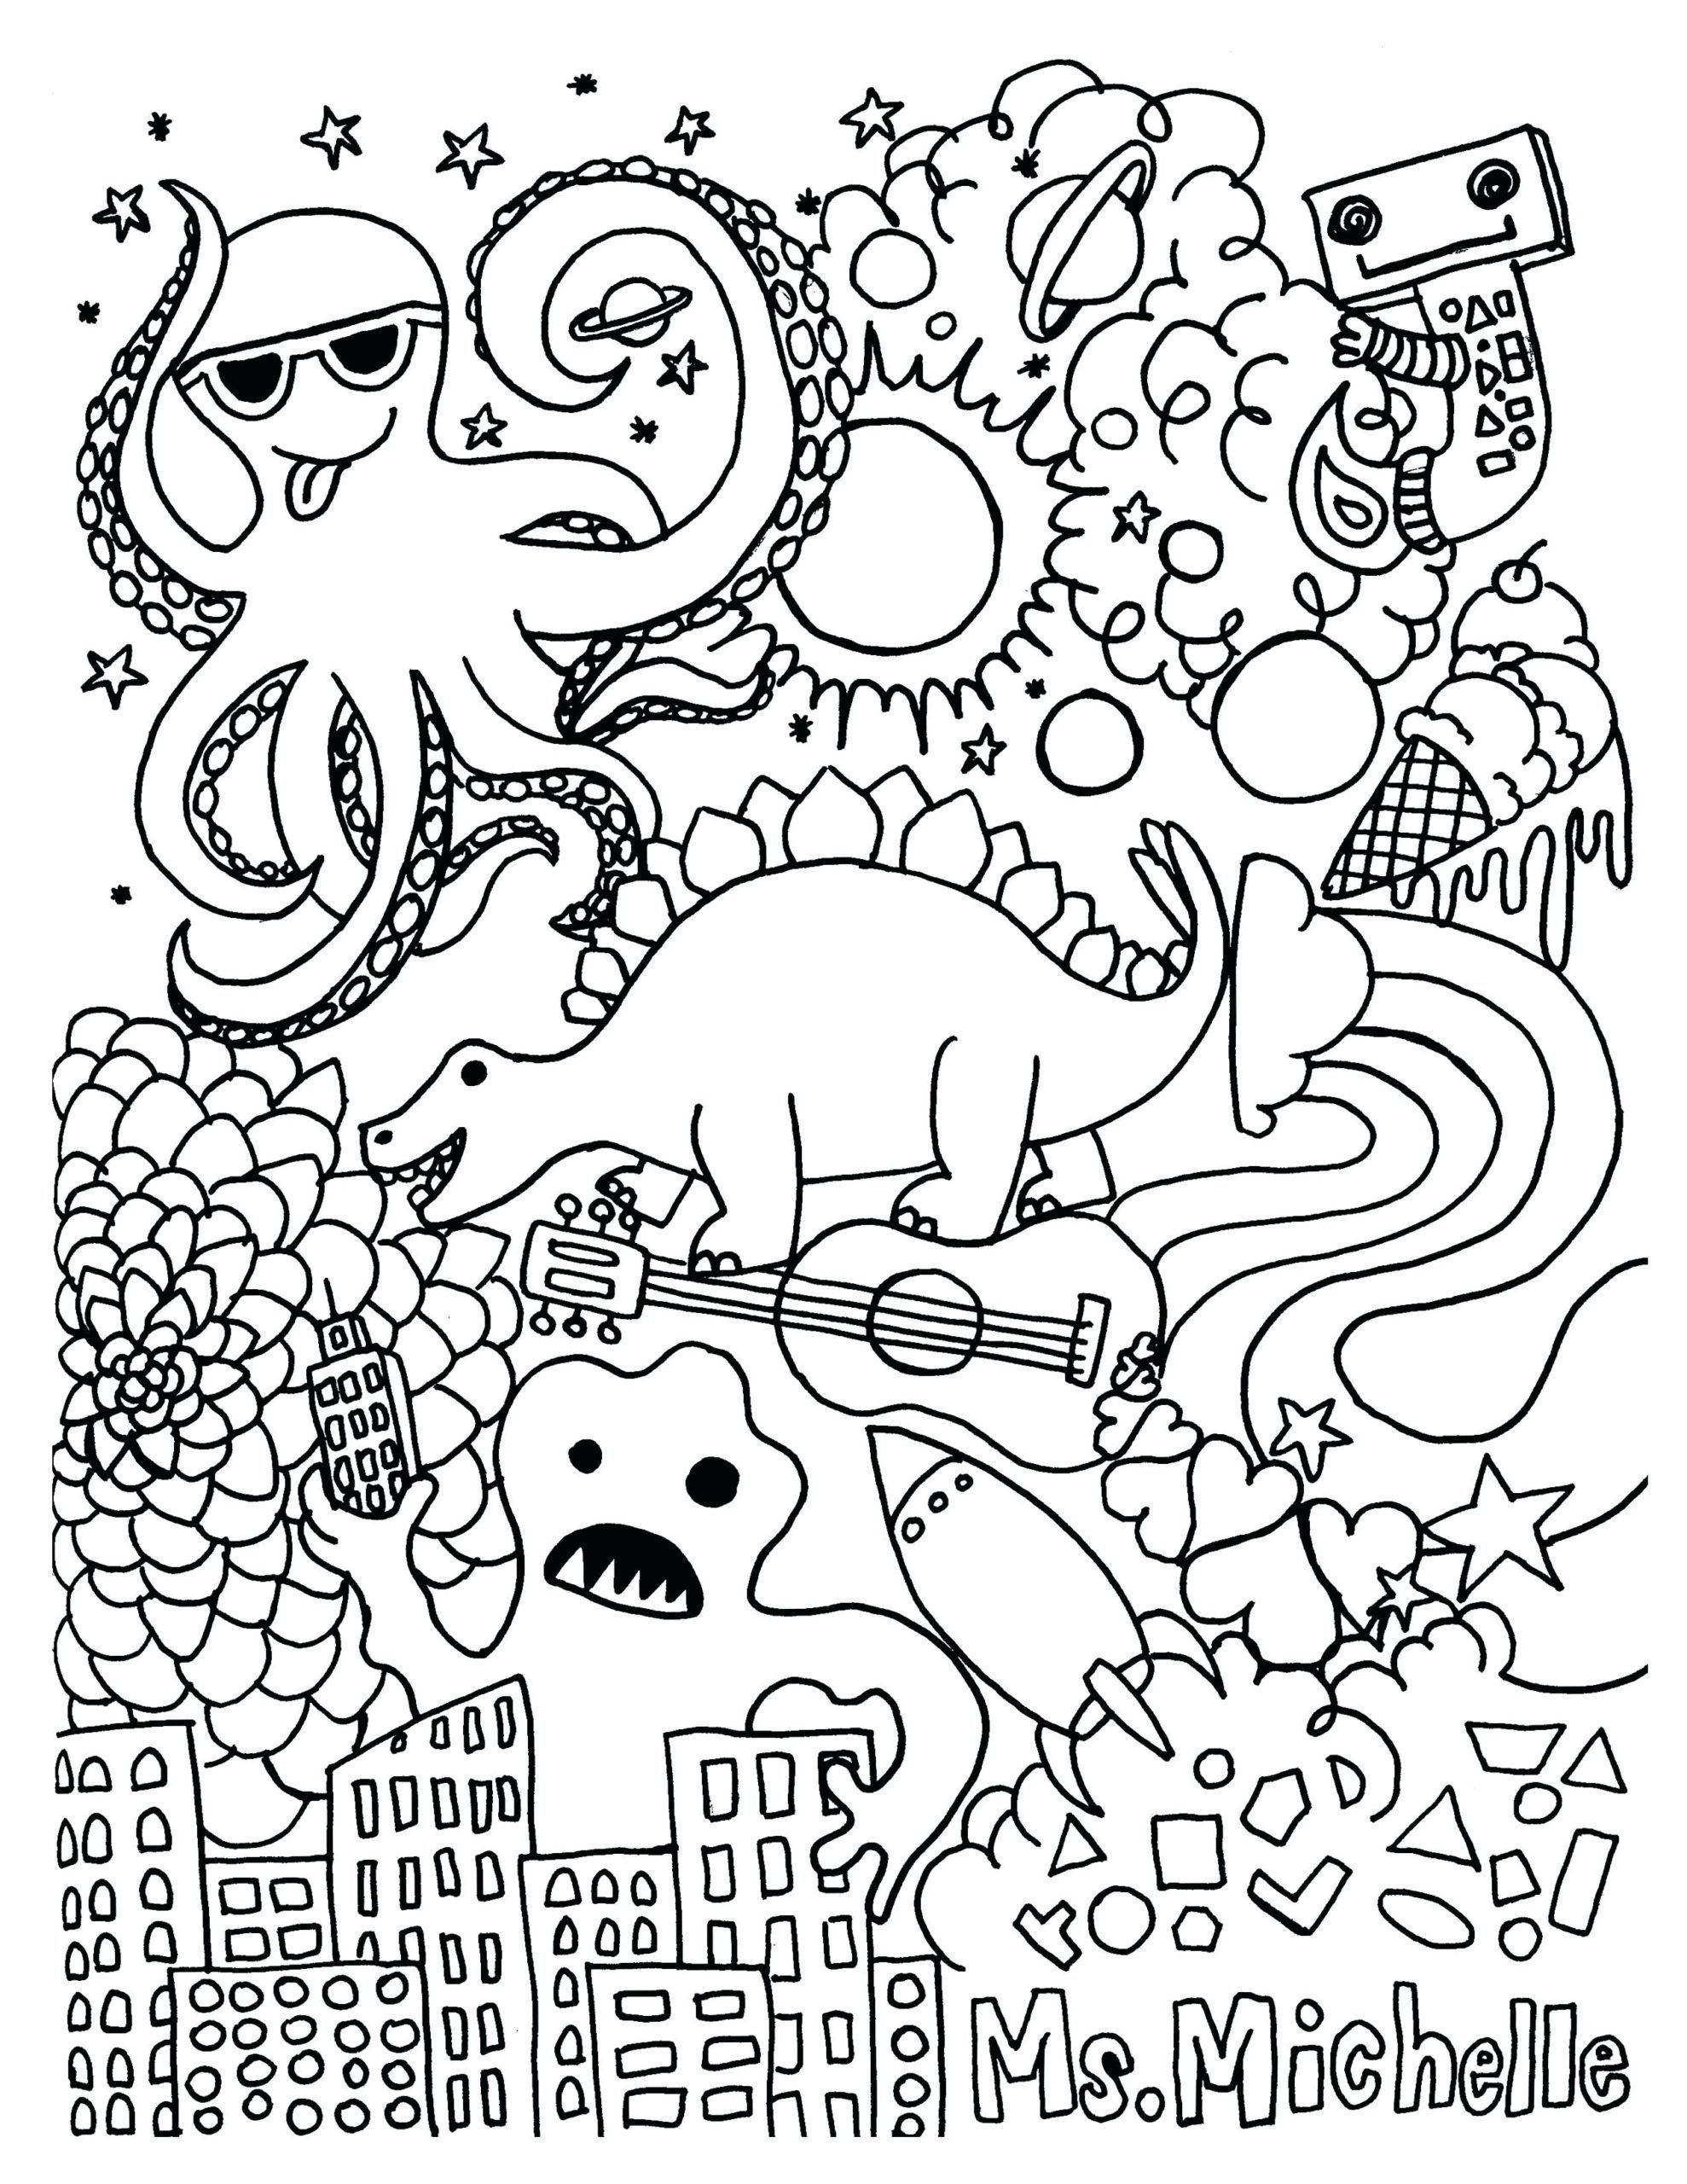 Coloring Books For Adults With Dementia Coloring Pages Coloring For Kids Fun Printable That Coloring Pages Inspirational Coloring Books Mandala Coloring Pages